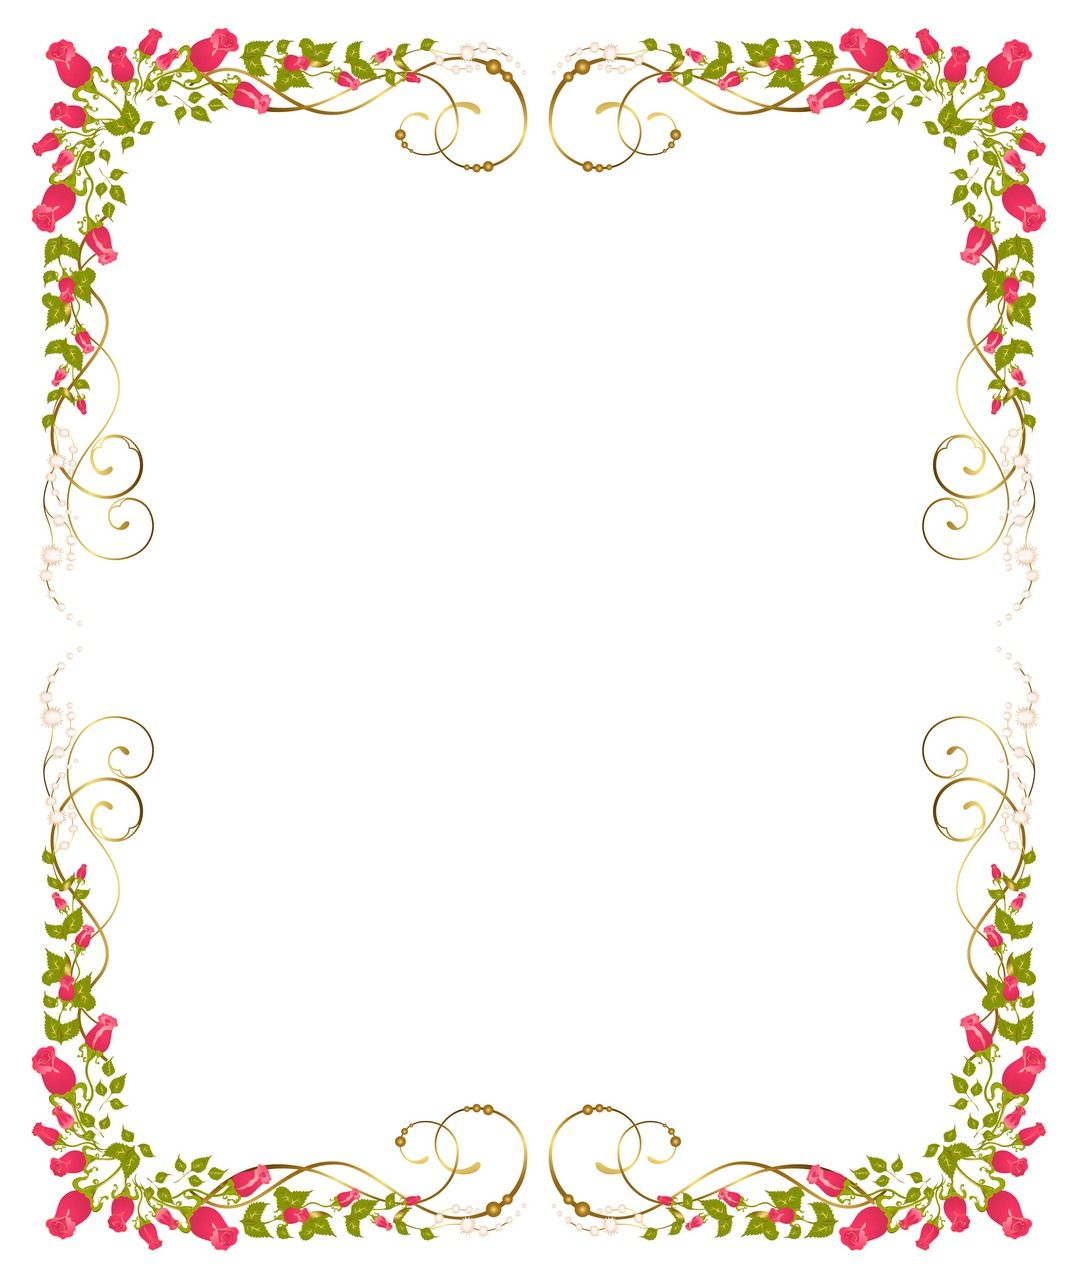 medium resolution of flower background frame 09 vector eps free download logo icons brand emblems